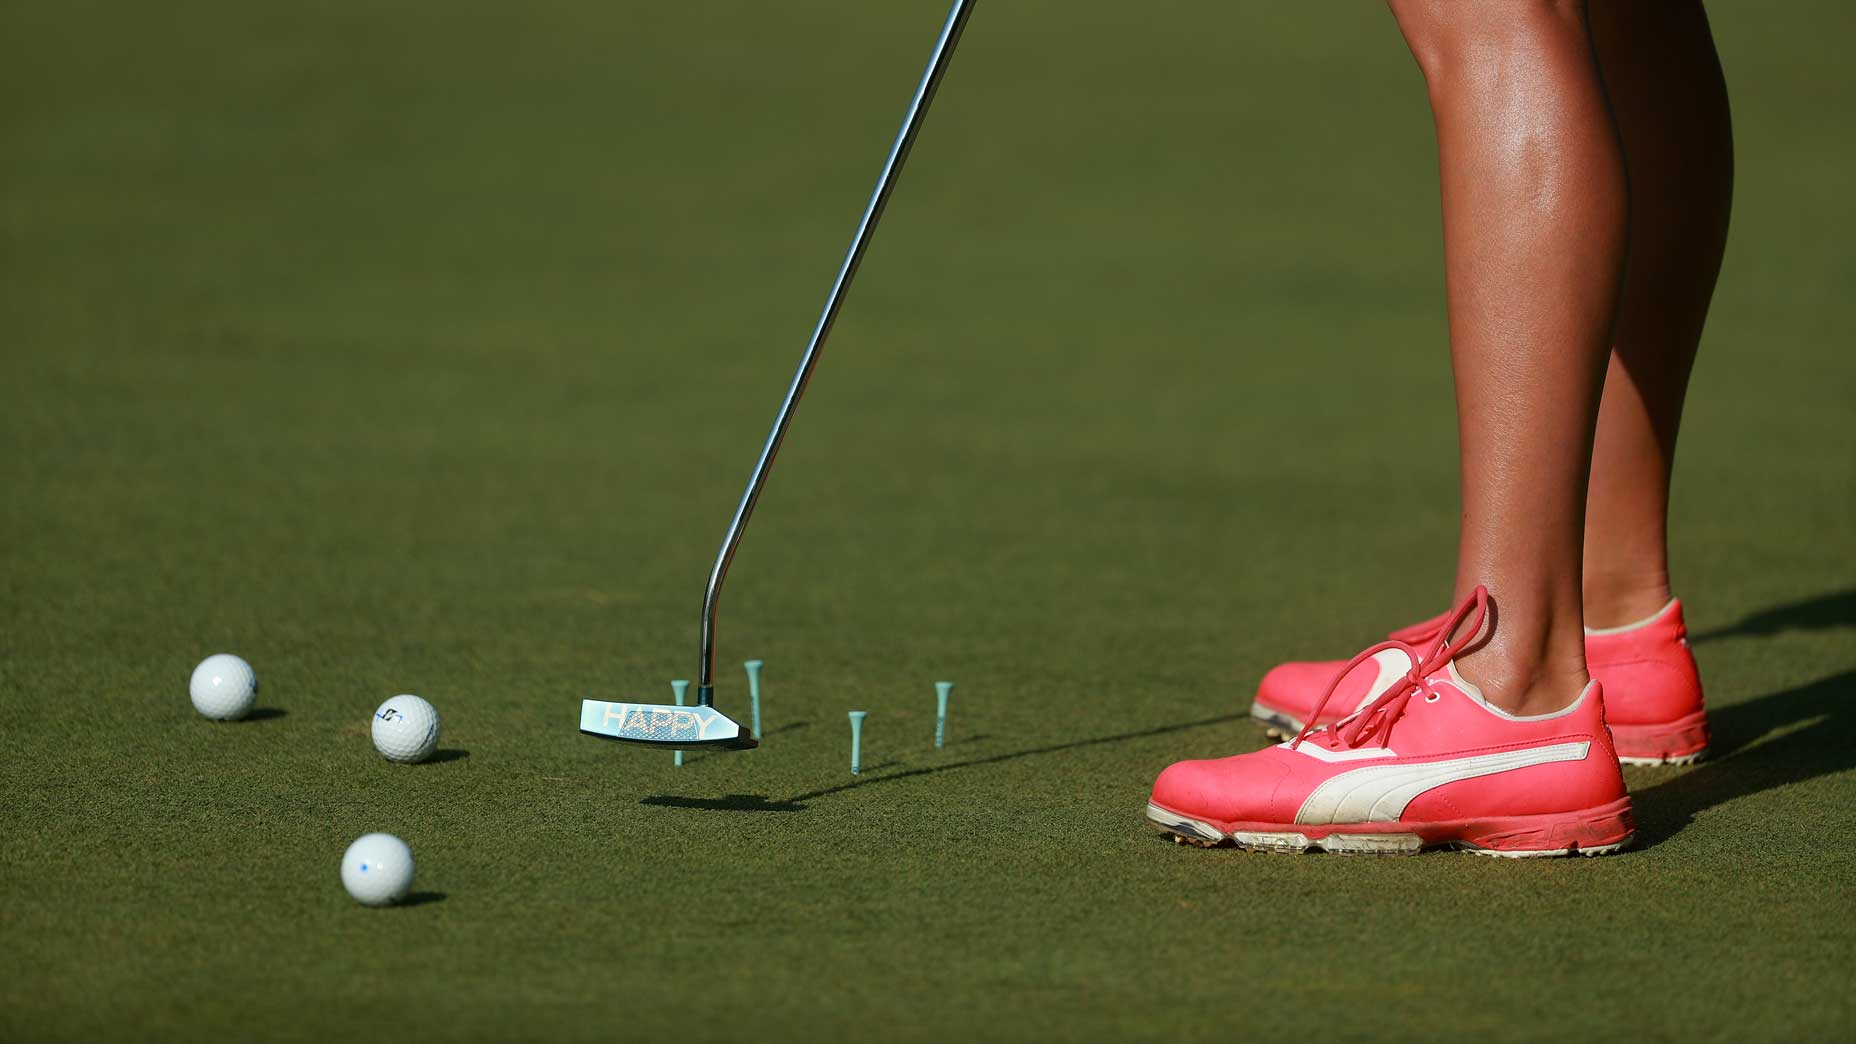 girl practices putting